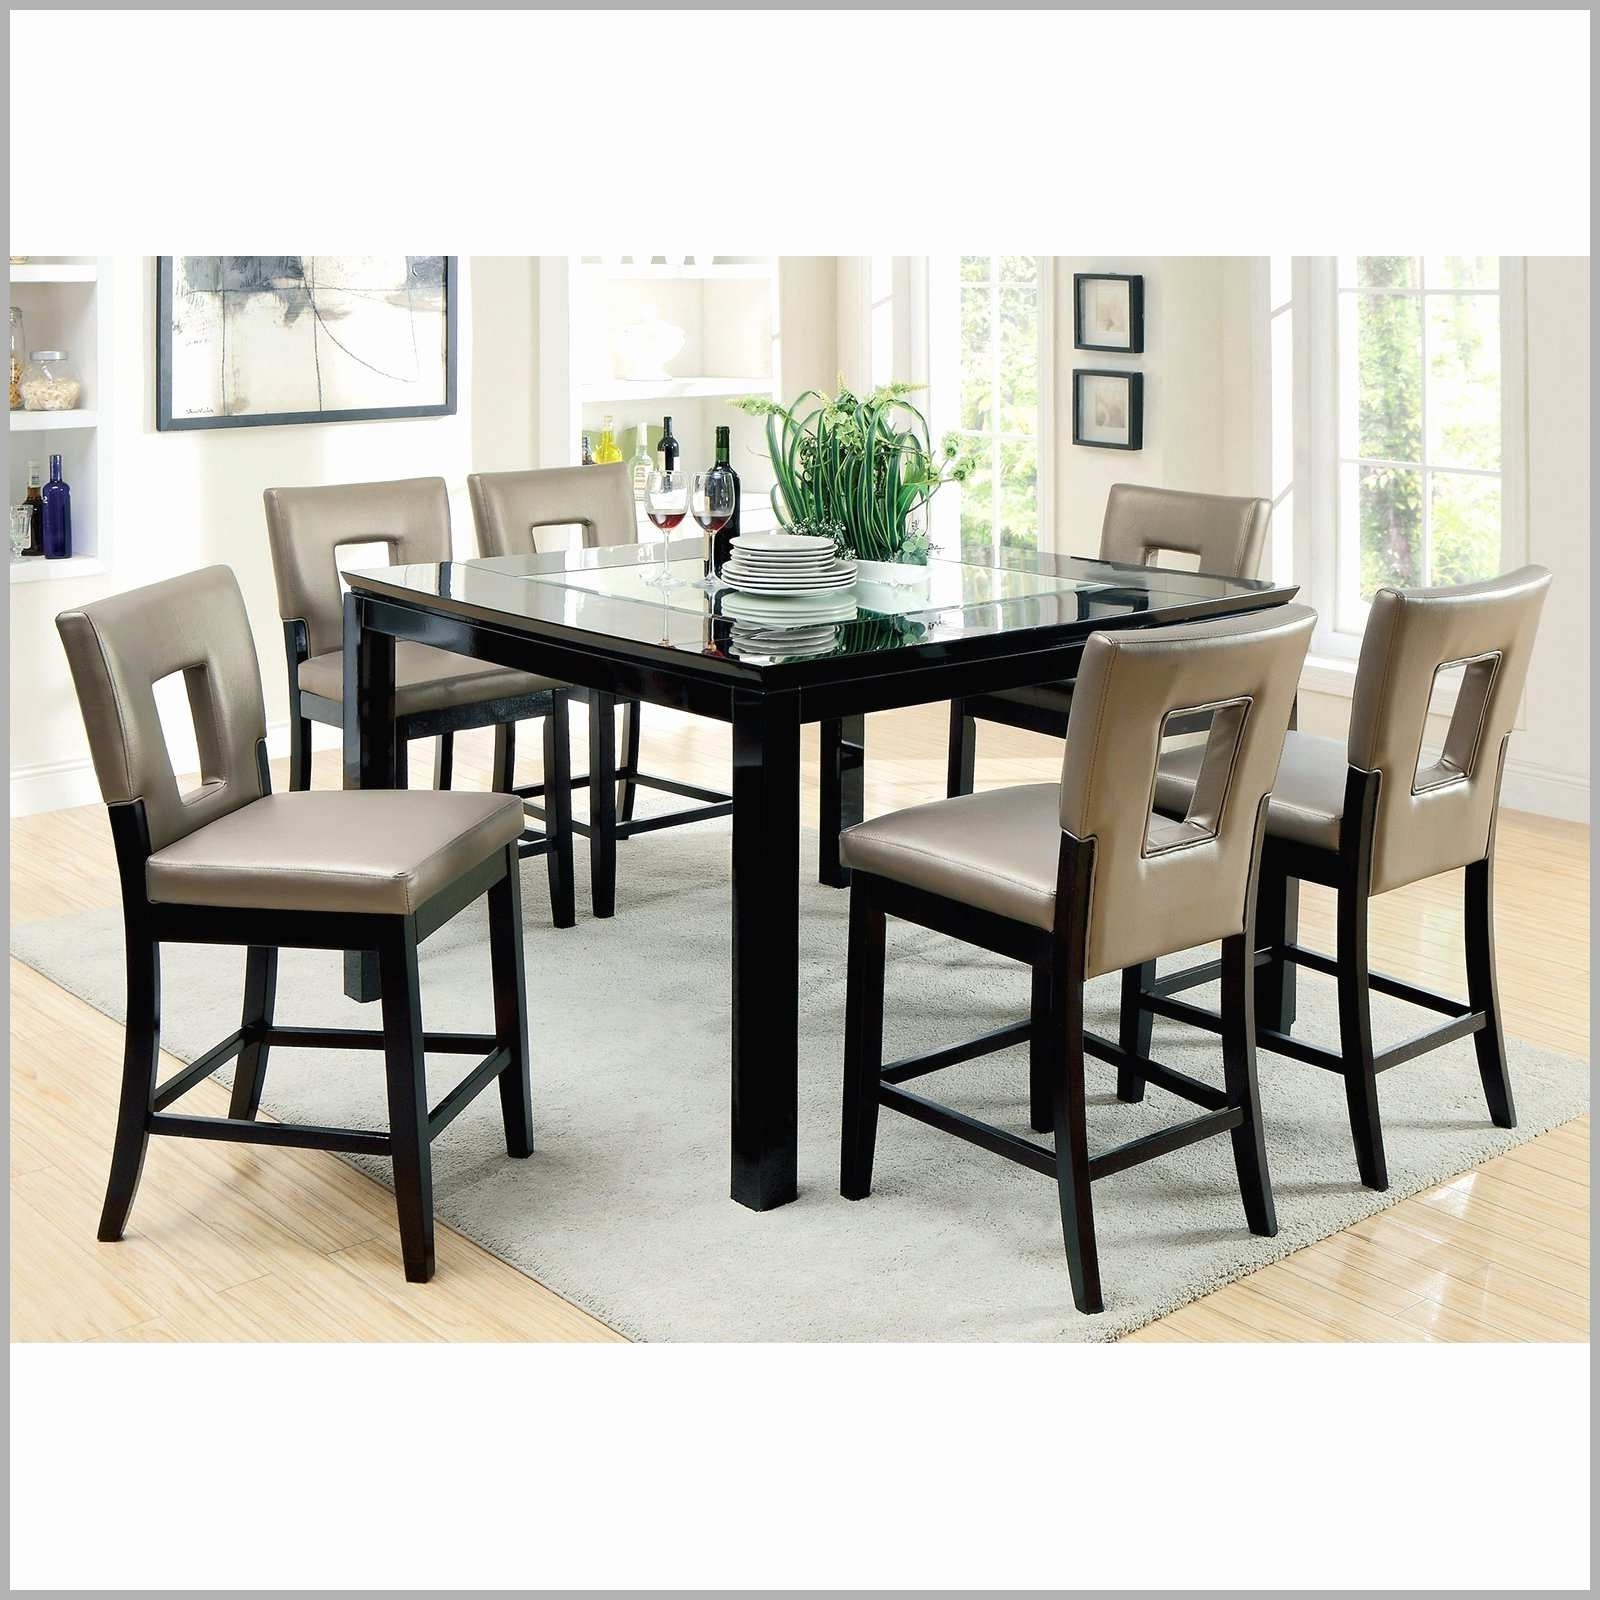 Recent 8 Seater Black Dining Tables Throughout White High Gloss Extending Dining Table Luxury 8 Seater Dining Table (View 21 of 25)